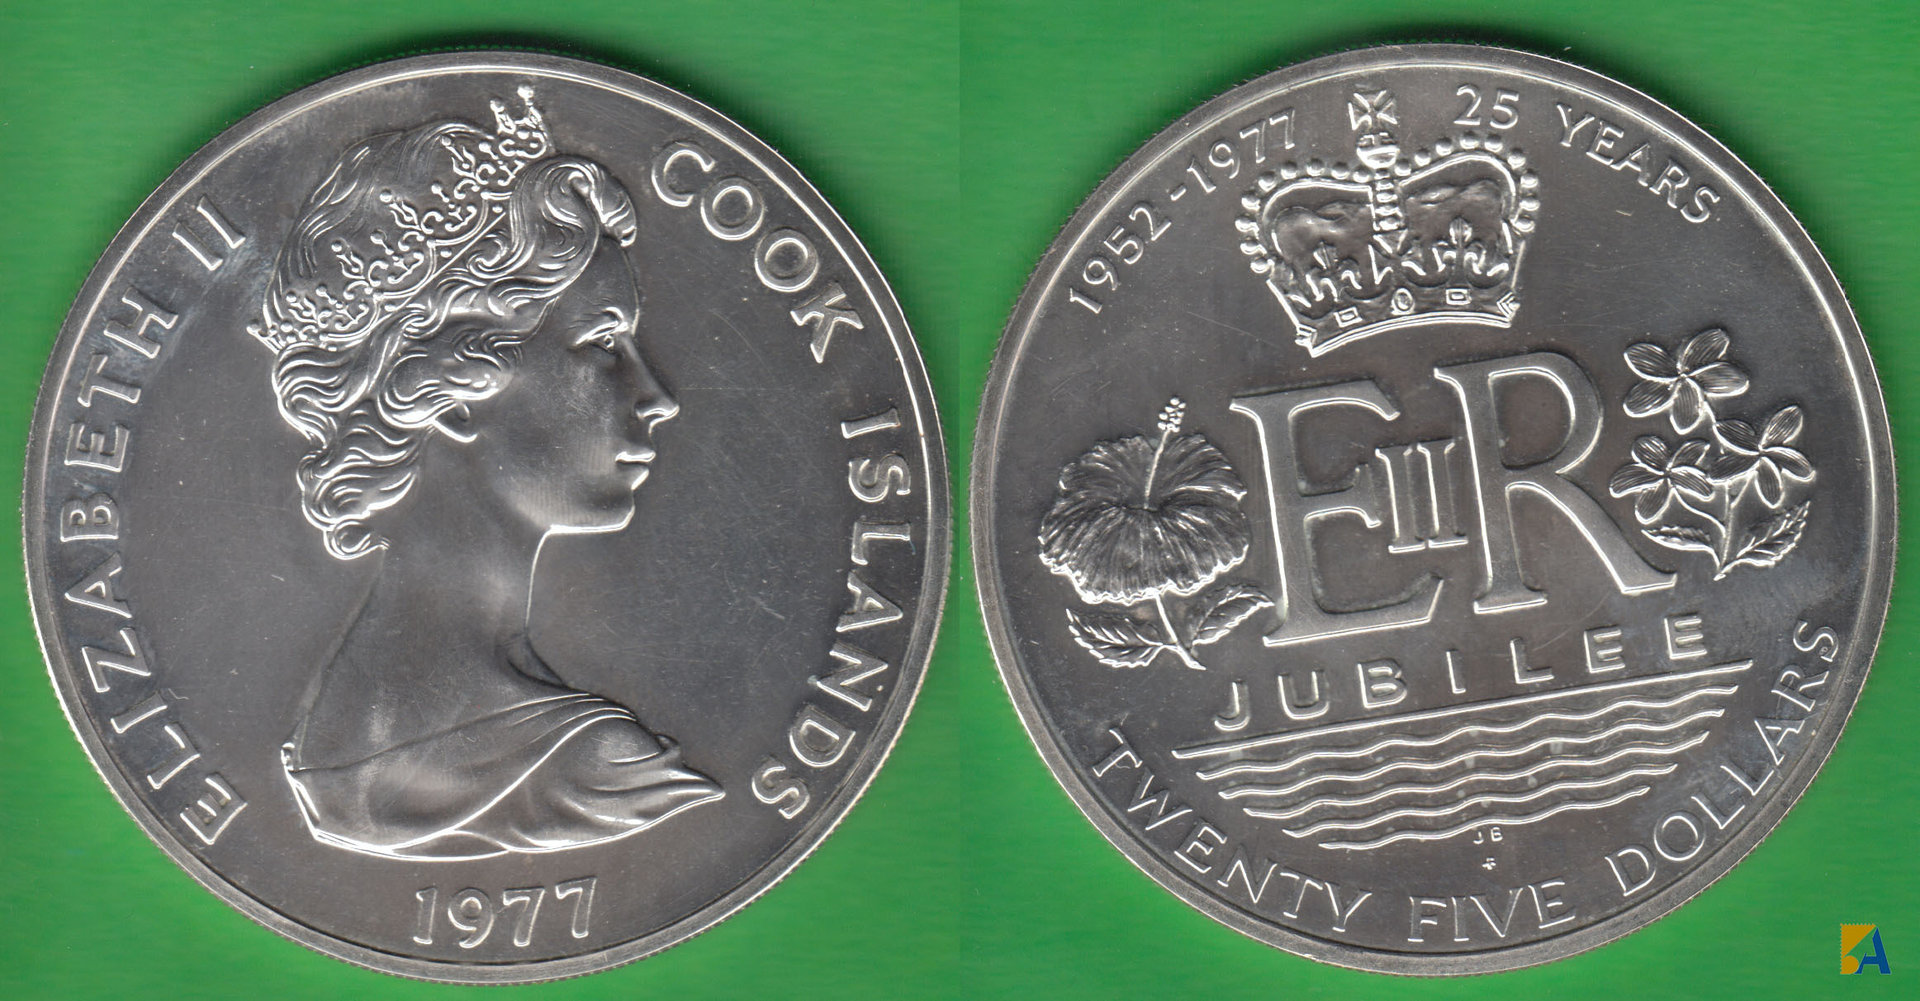 ISLAS COOK - COOK ISLANDS. 25 DOLARES (DOLLARS) DE 1977. PLATA 0.500.